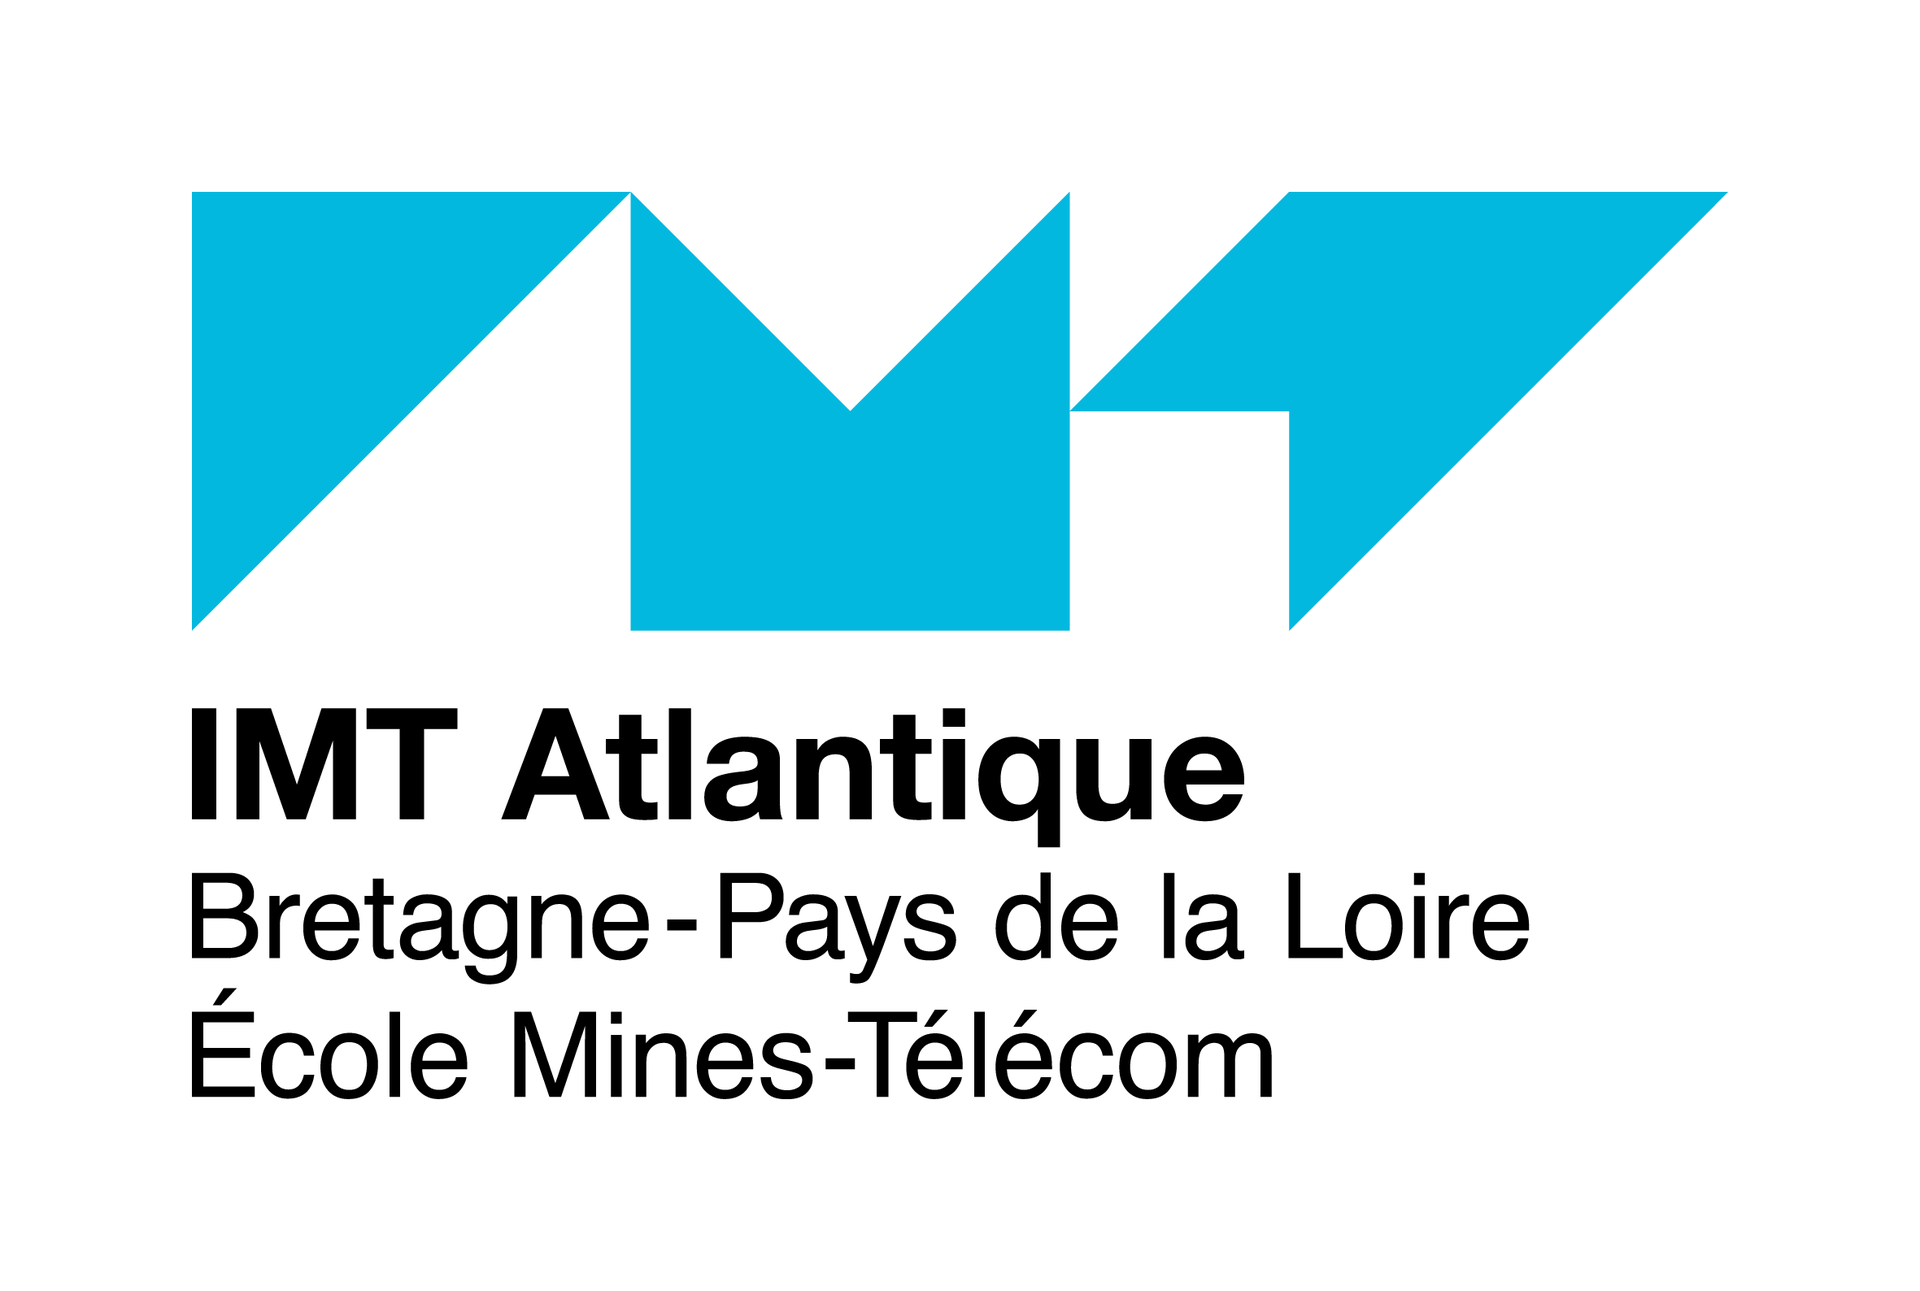 imt_atlantique_university